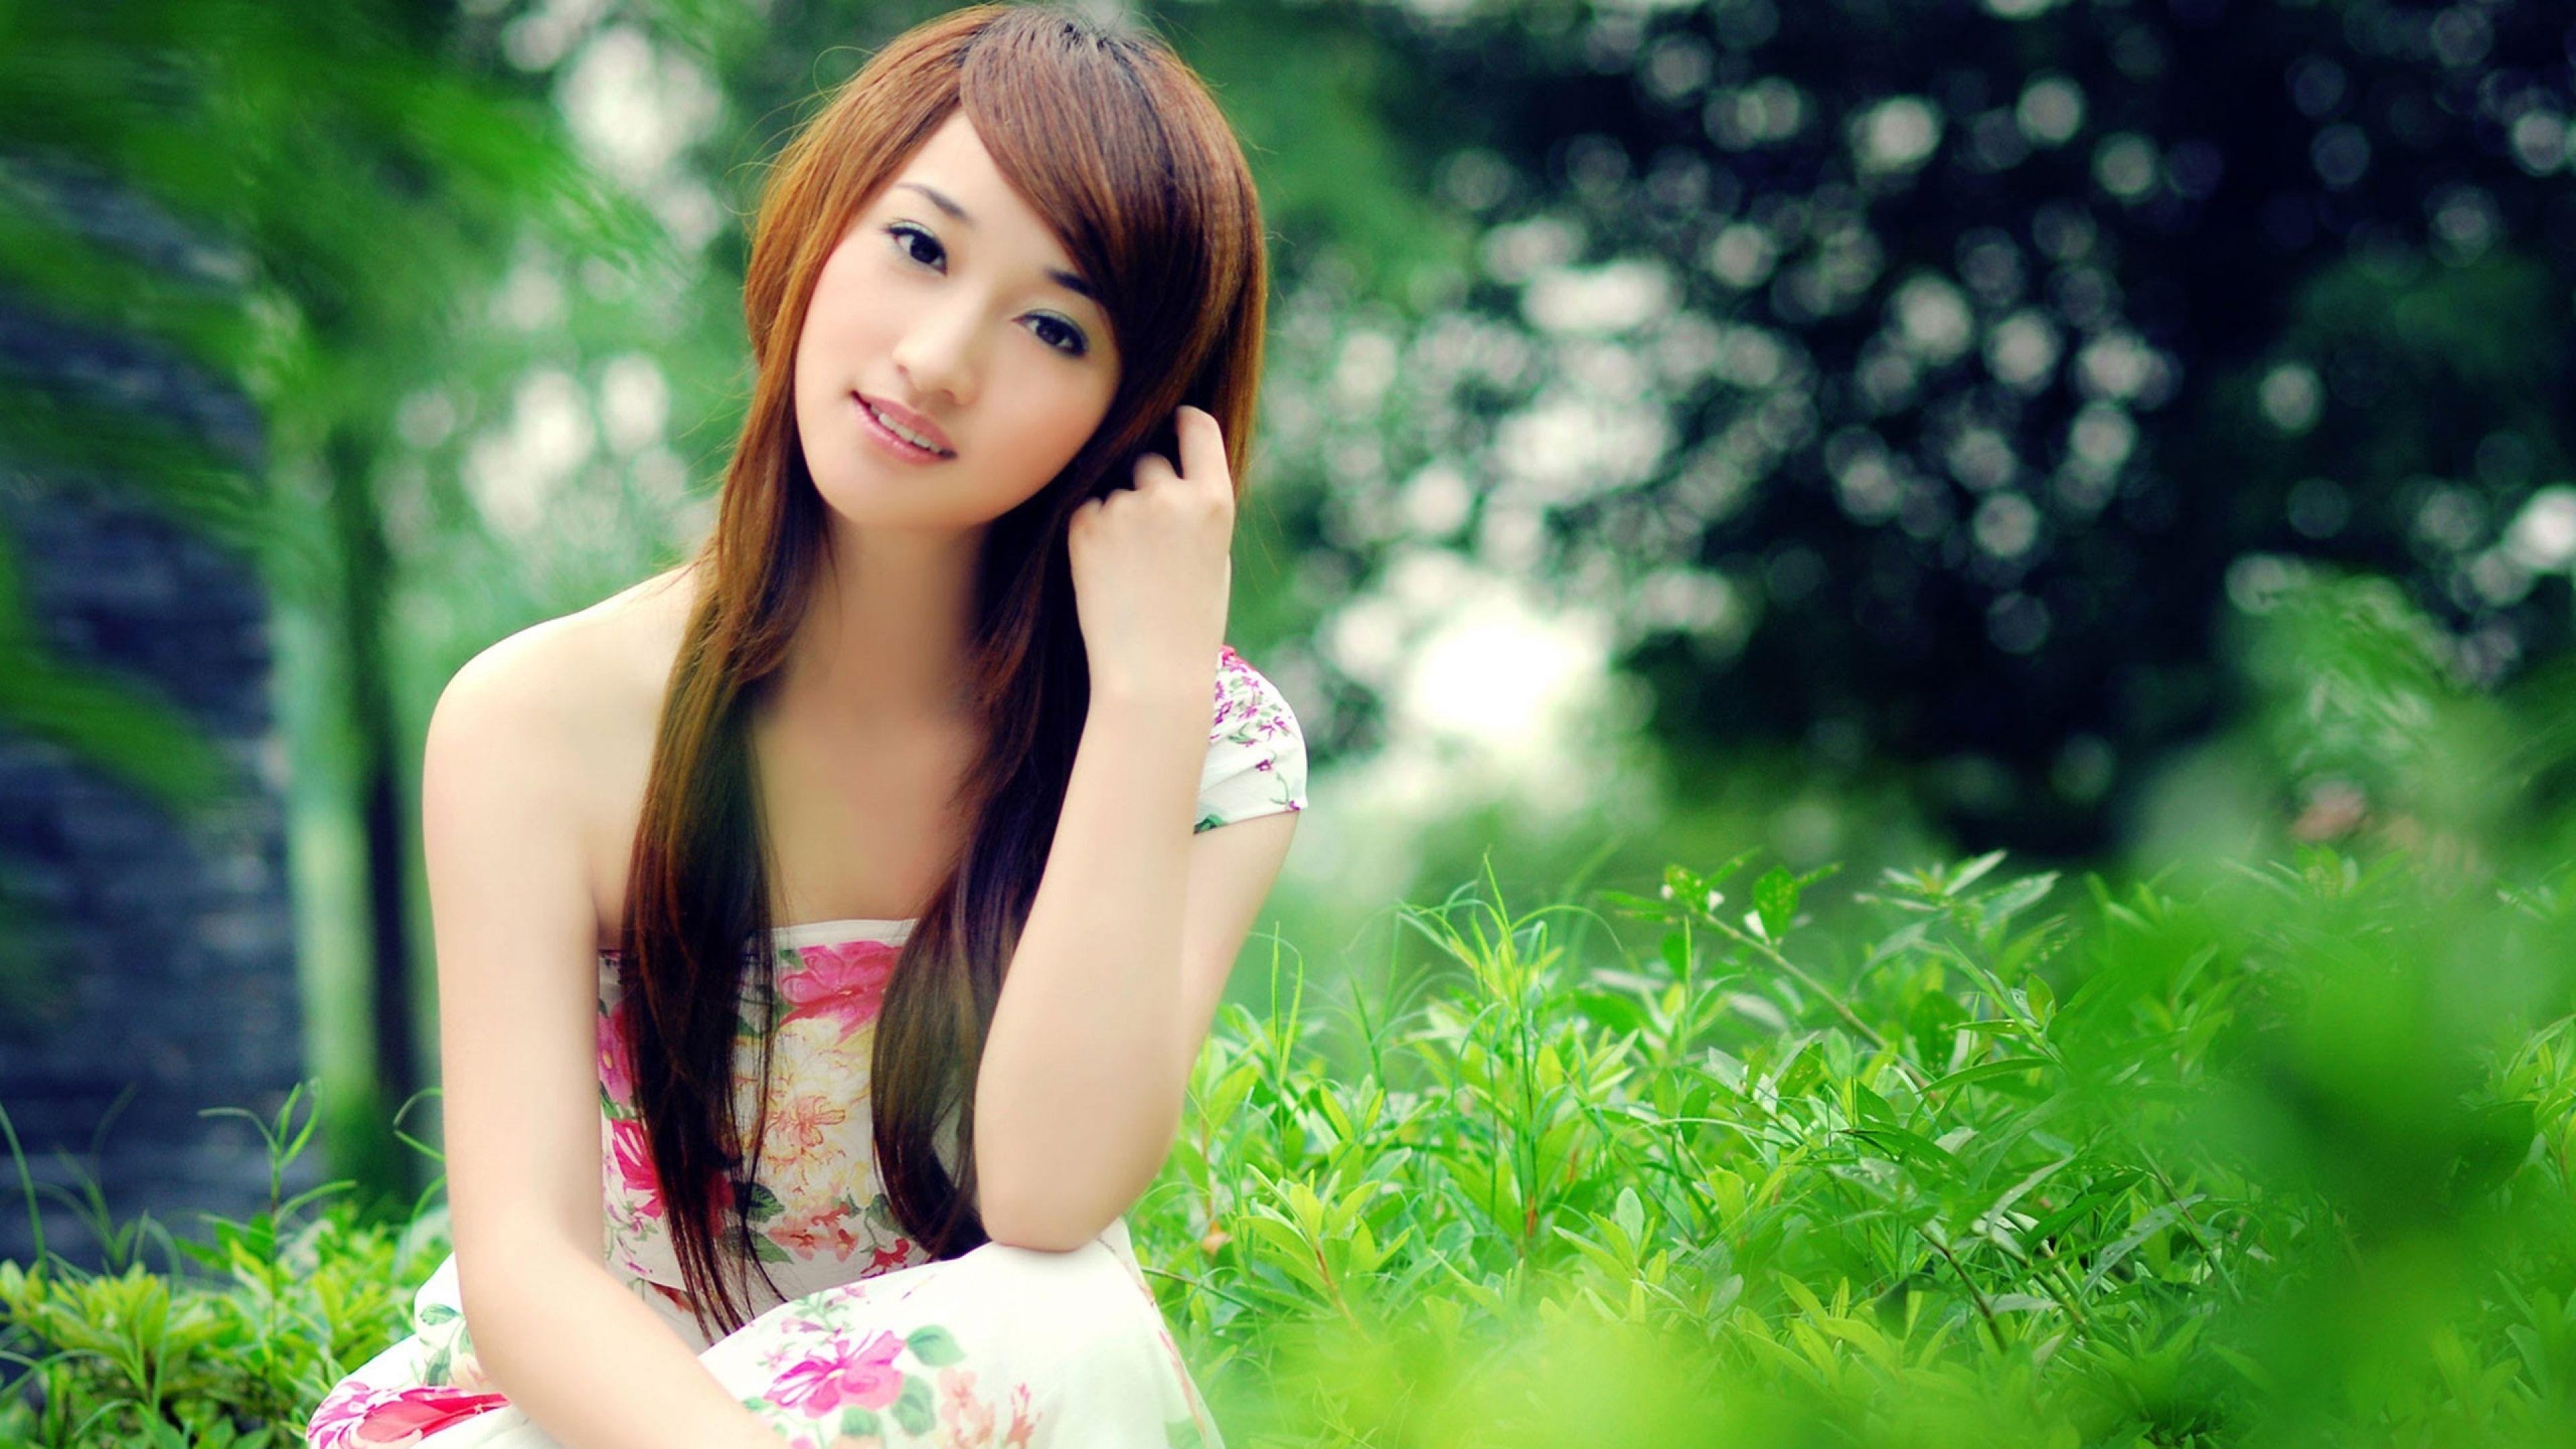 Chinese Girl Wallpapers - Wallpaper Cave